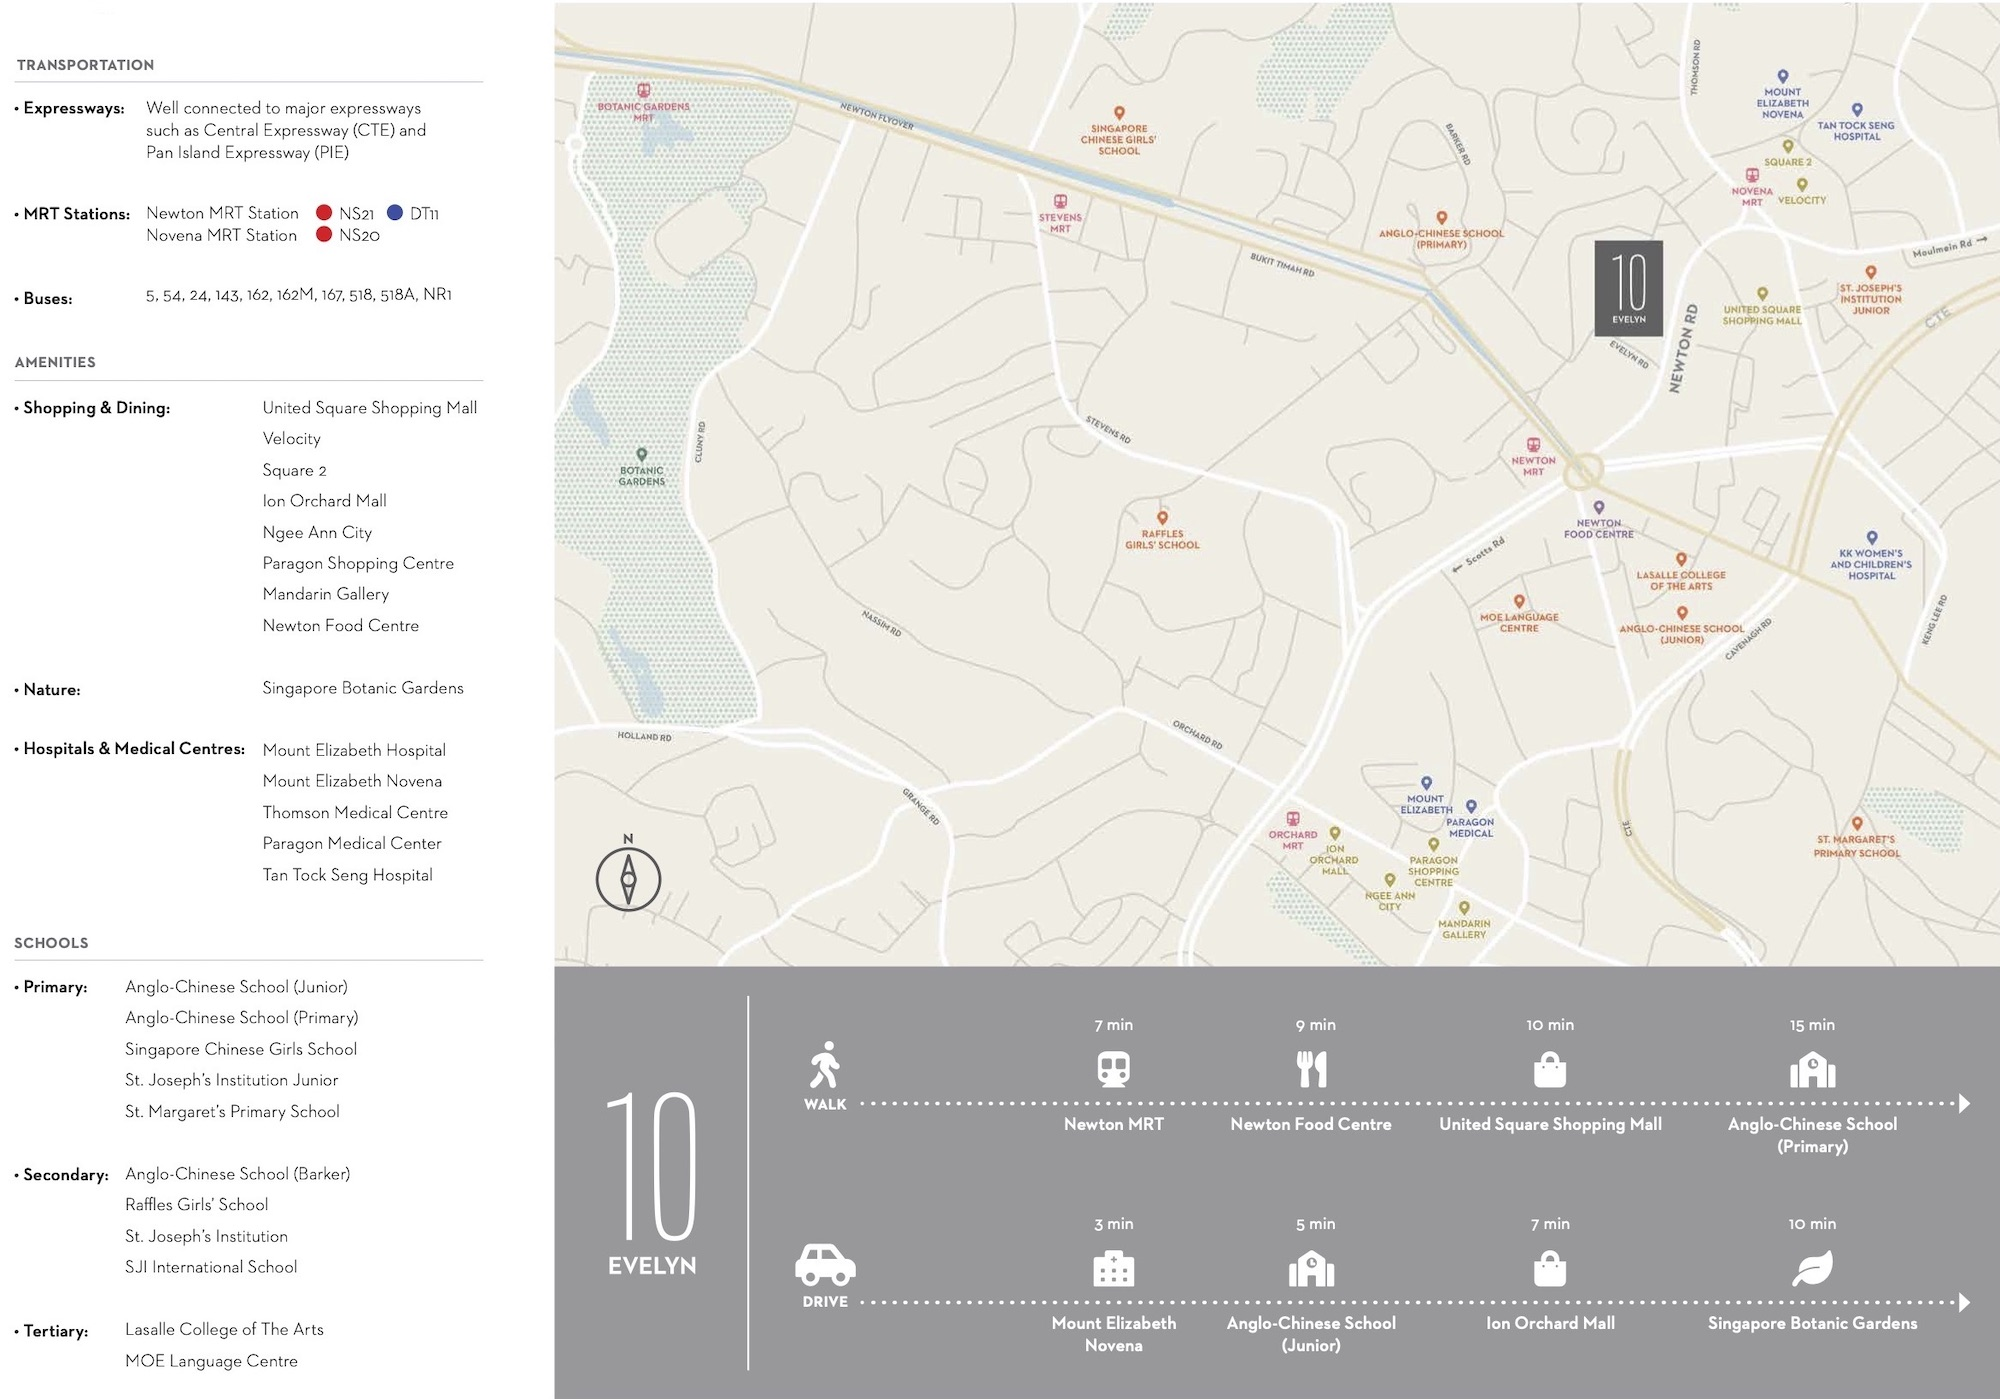 10-Evelyn-new-condo-singapore-location-map